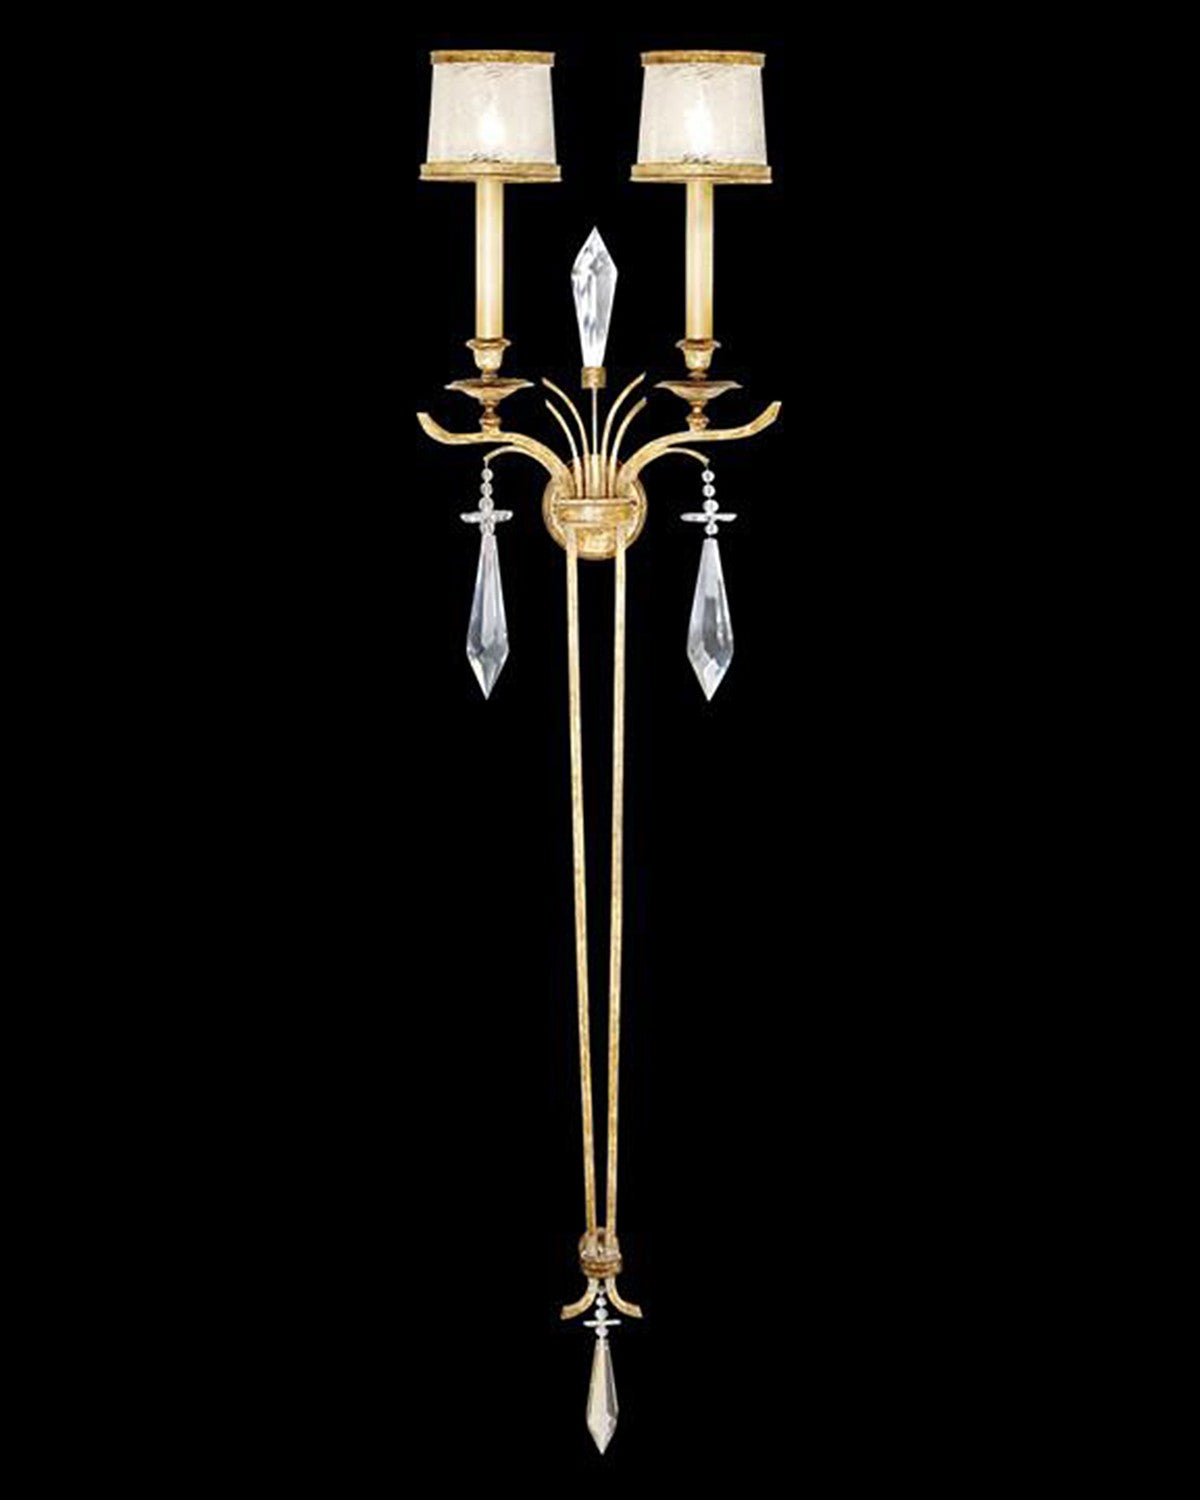 SAGITARIUS WALL SCONCES ANGIE HOMES